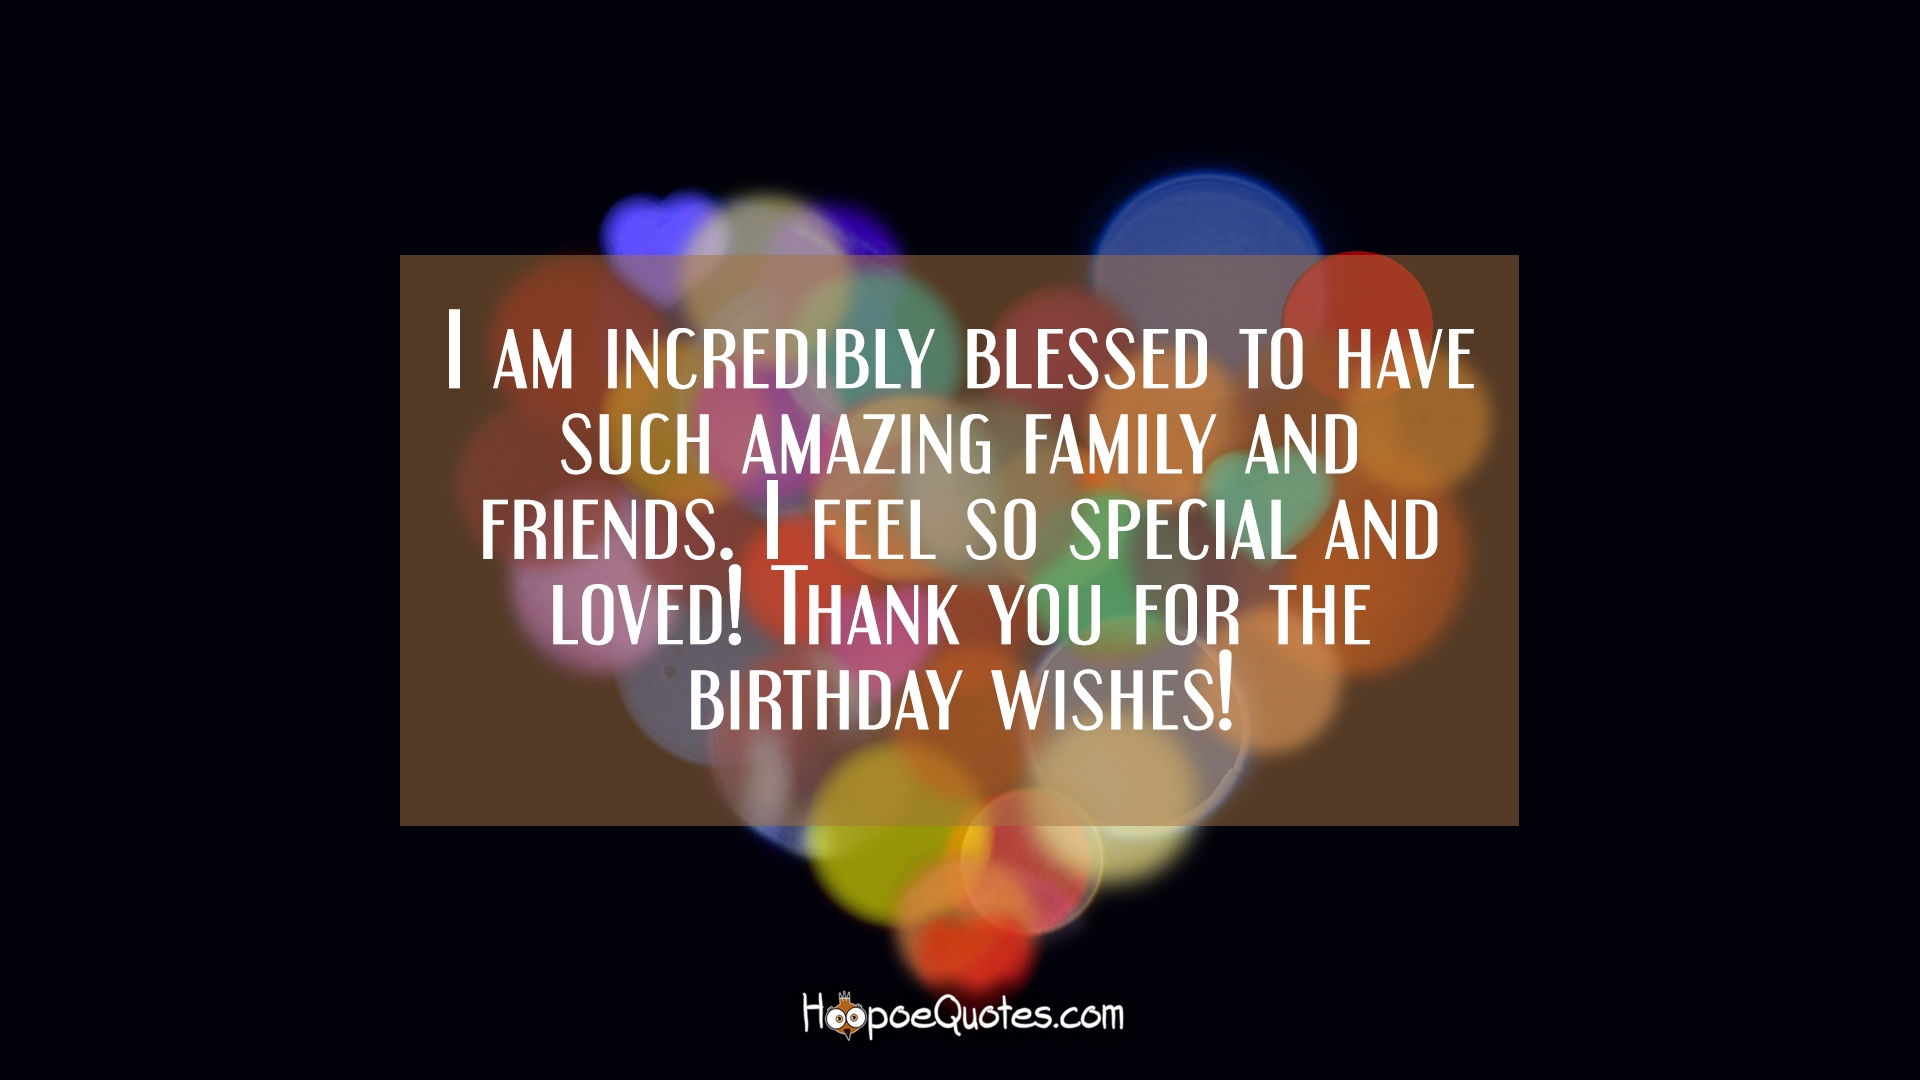 Happy birthday to me birthday wishes for myself with images i am incredibly blessed to have such amazing family and friends i feel so special and loved thank you for the birthday wishes kristyandbryce Images